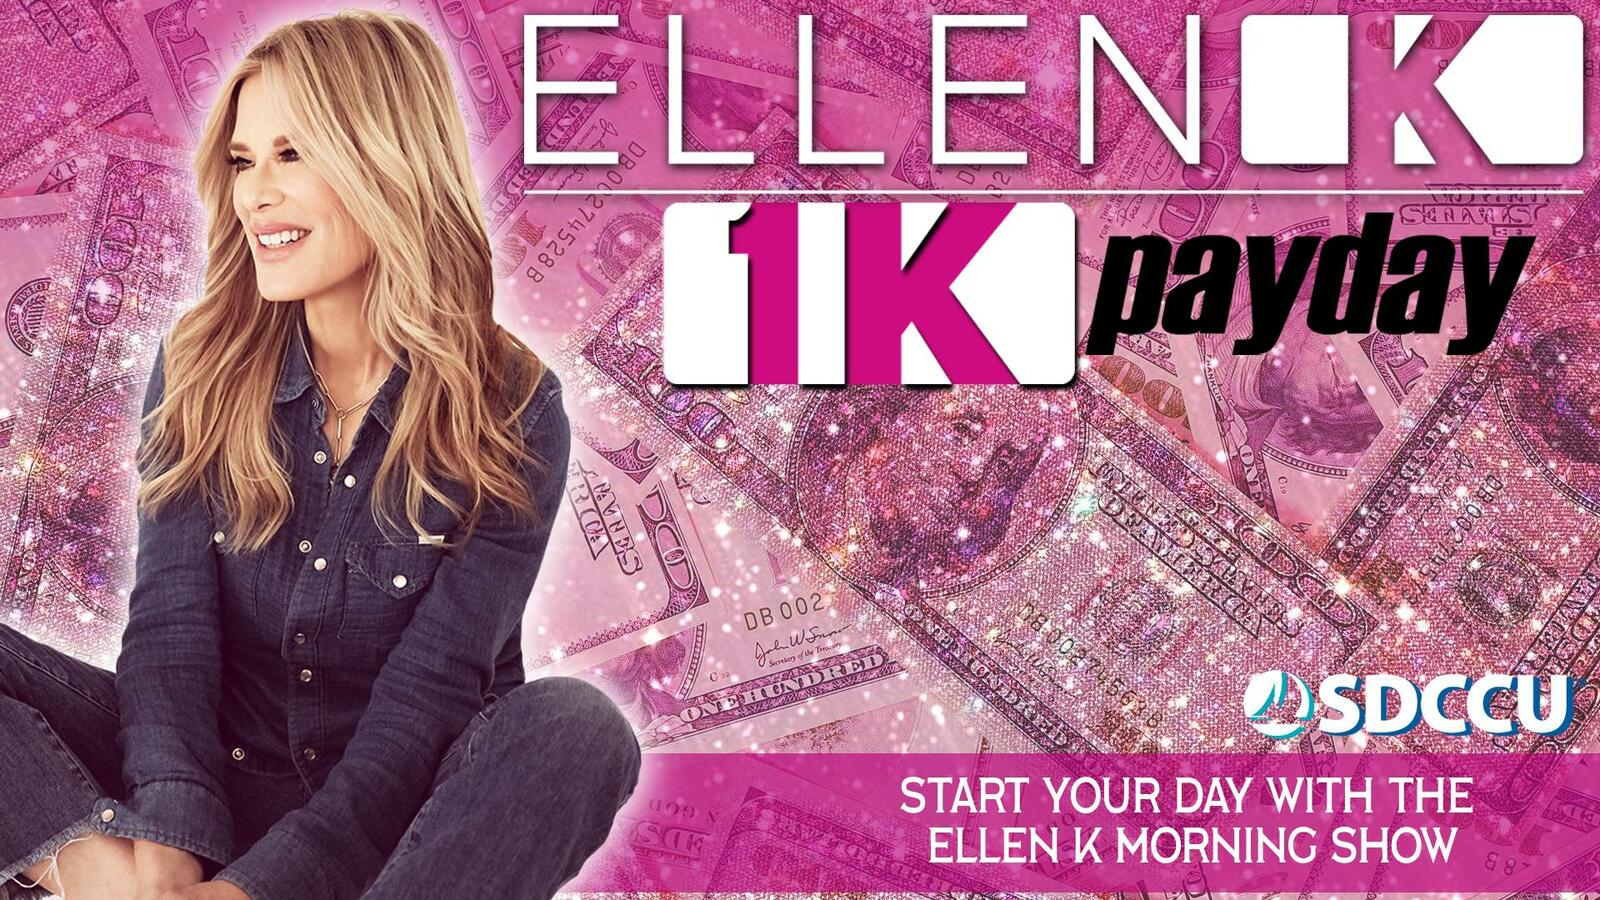 Here's The Ellen K $1K Payday Song of the Day!